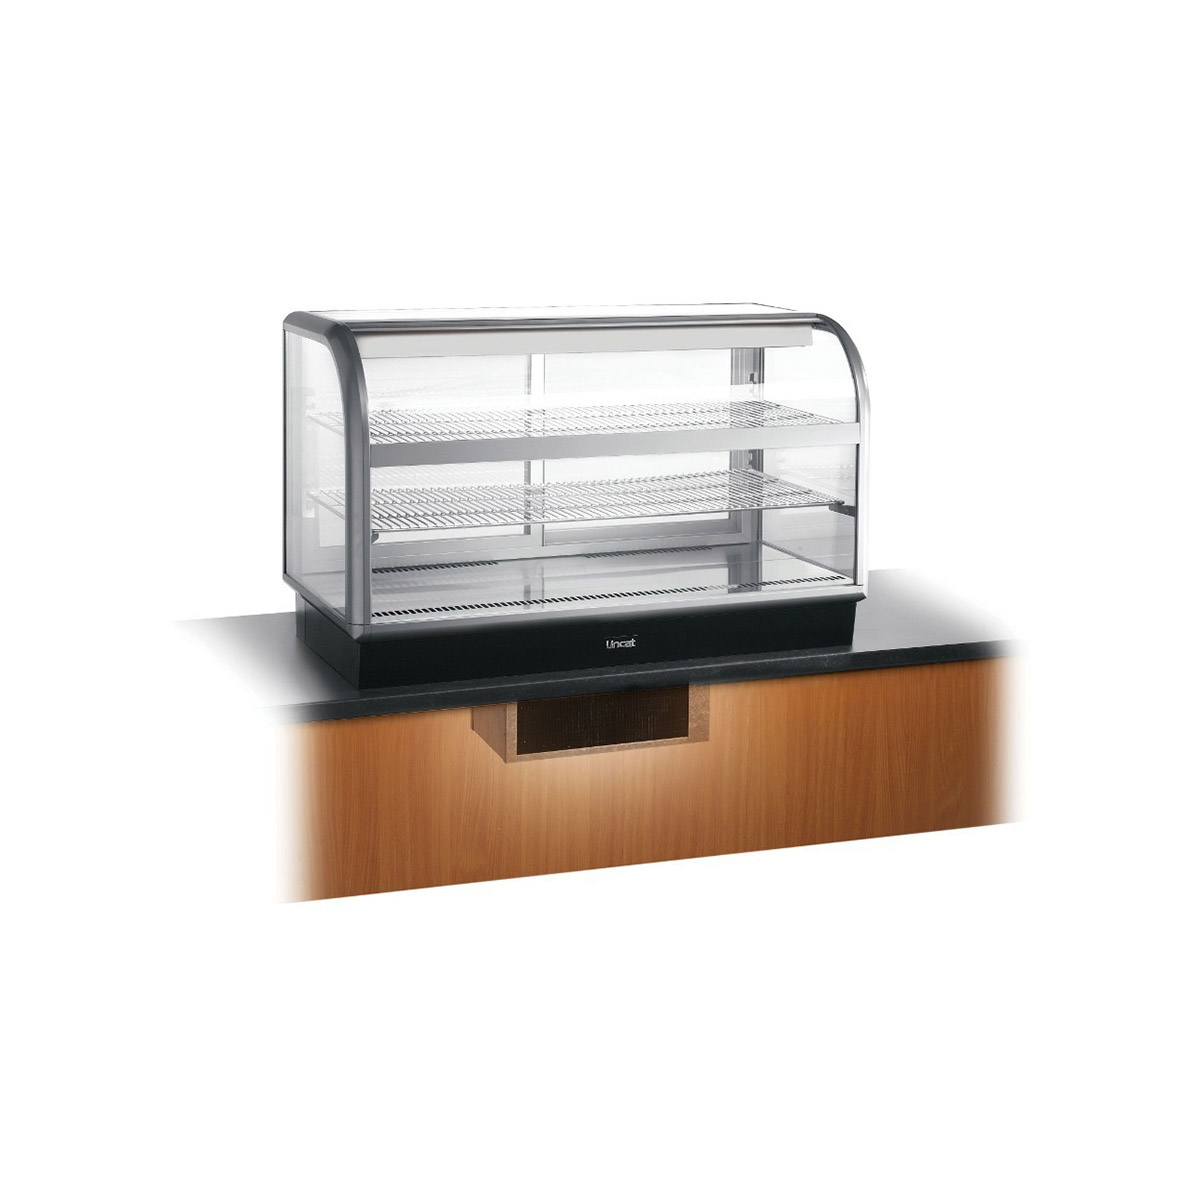 C6R/125BU - Lincat Seal 650 Series Counter-top Curved Front Refrigerated Merchandiser - Back-Service - Under-Counter Power Pack - W 1250 mm - 0.7 kW